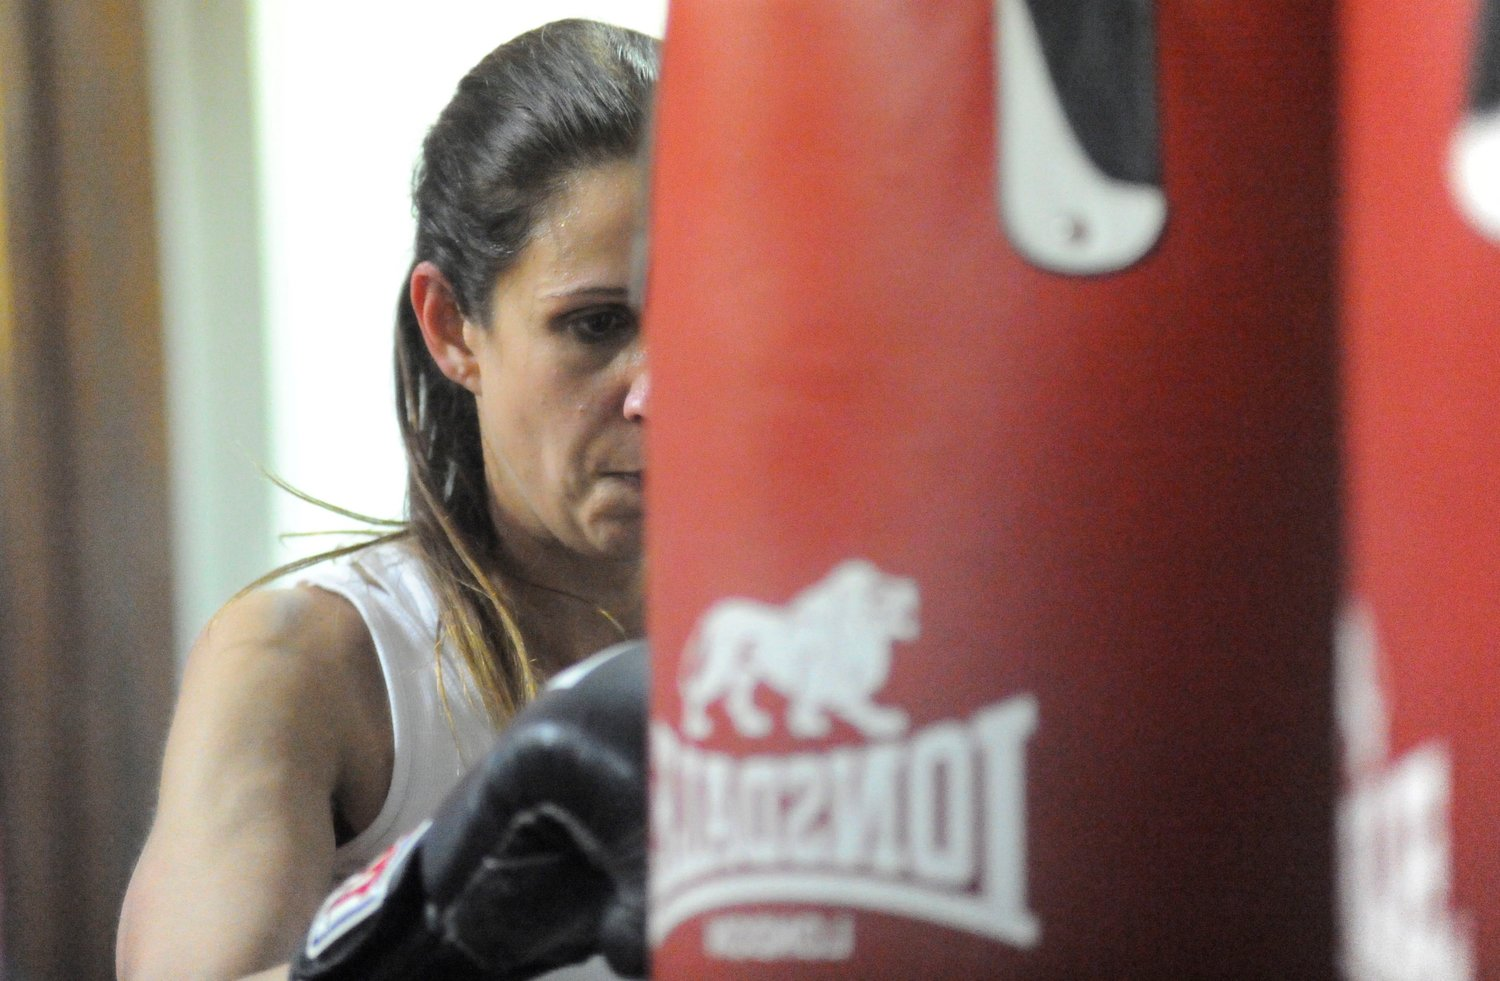 Attack mode. Megan Cheney gets up close and personal on the heavy bag.